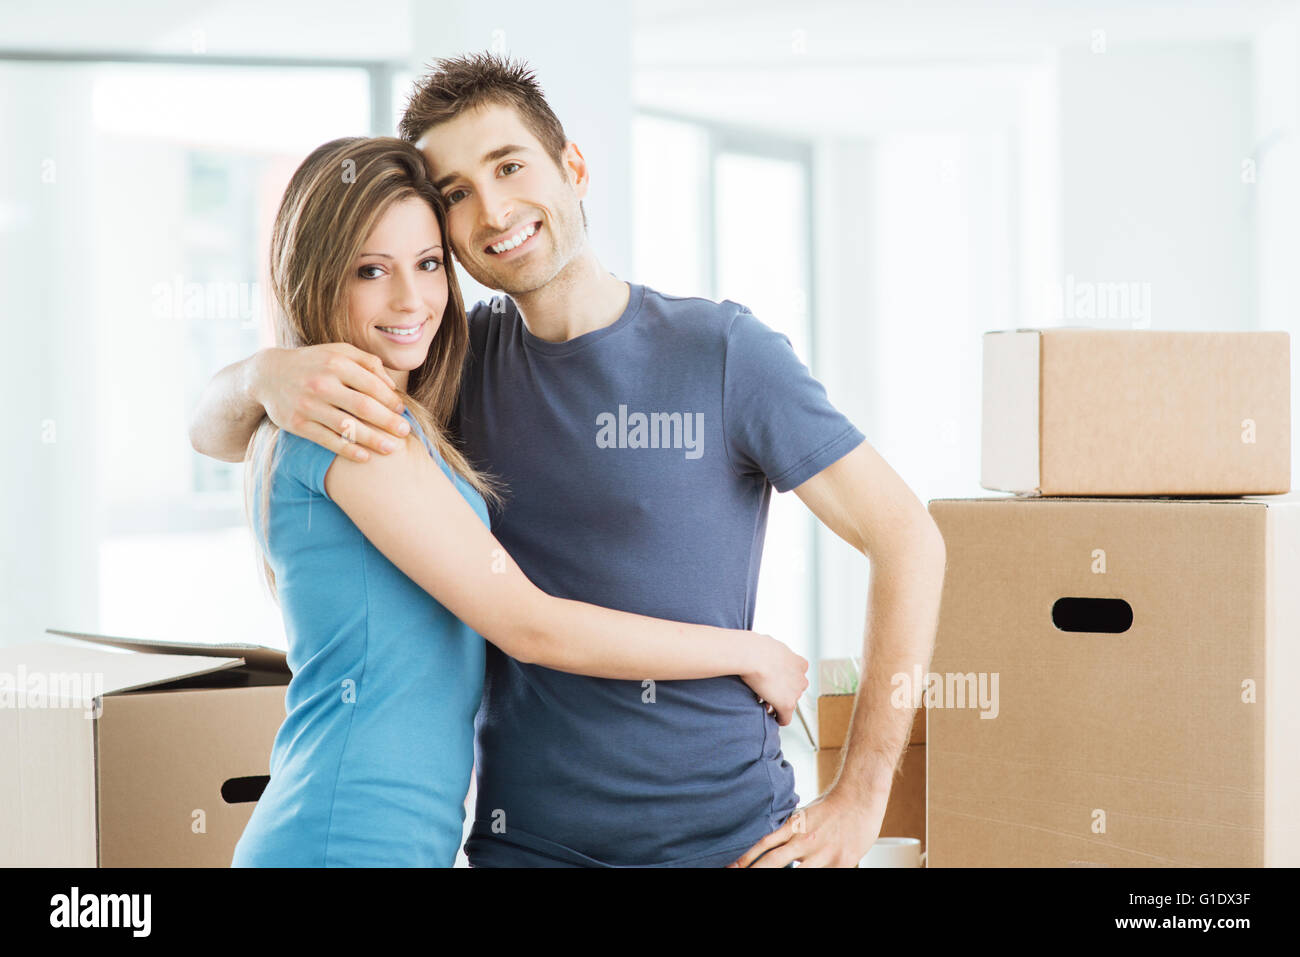 Young happy couple hugging in their new house and smiling at camera Photo Stock